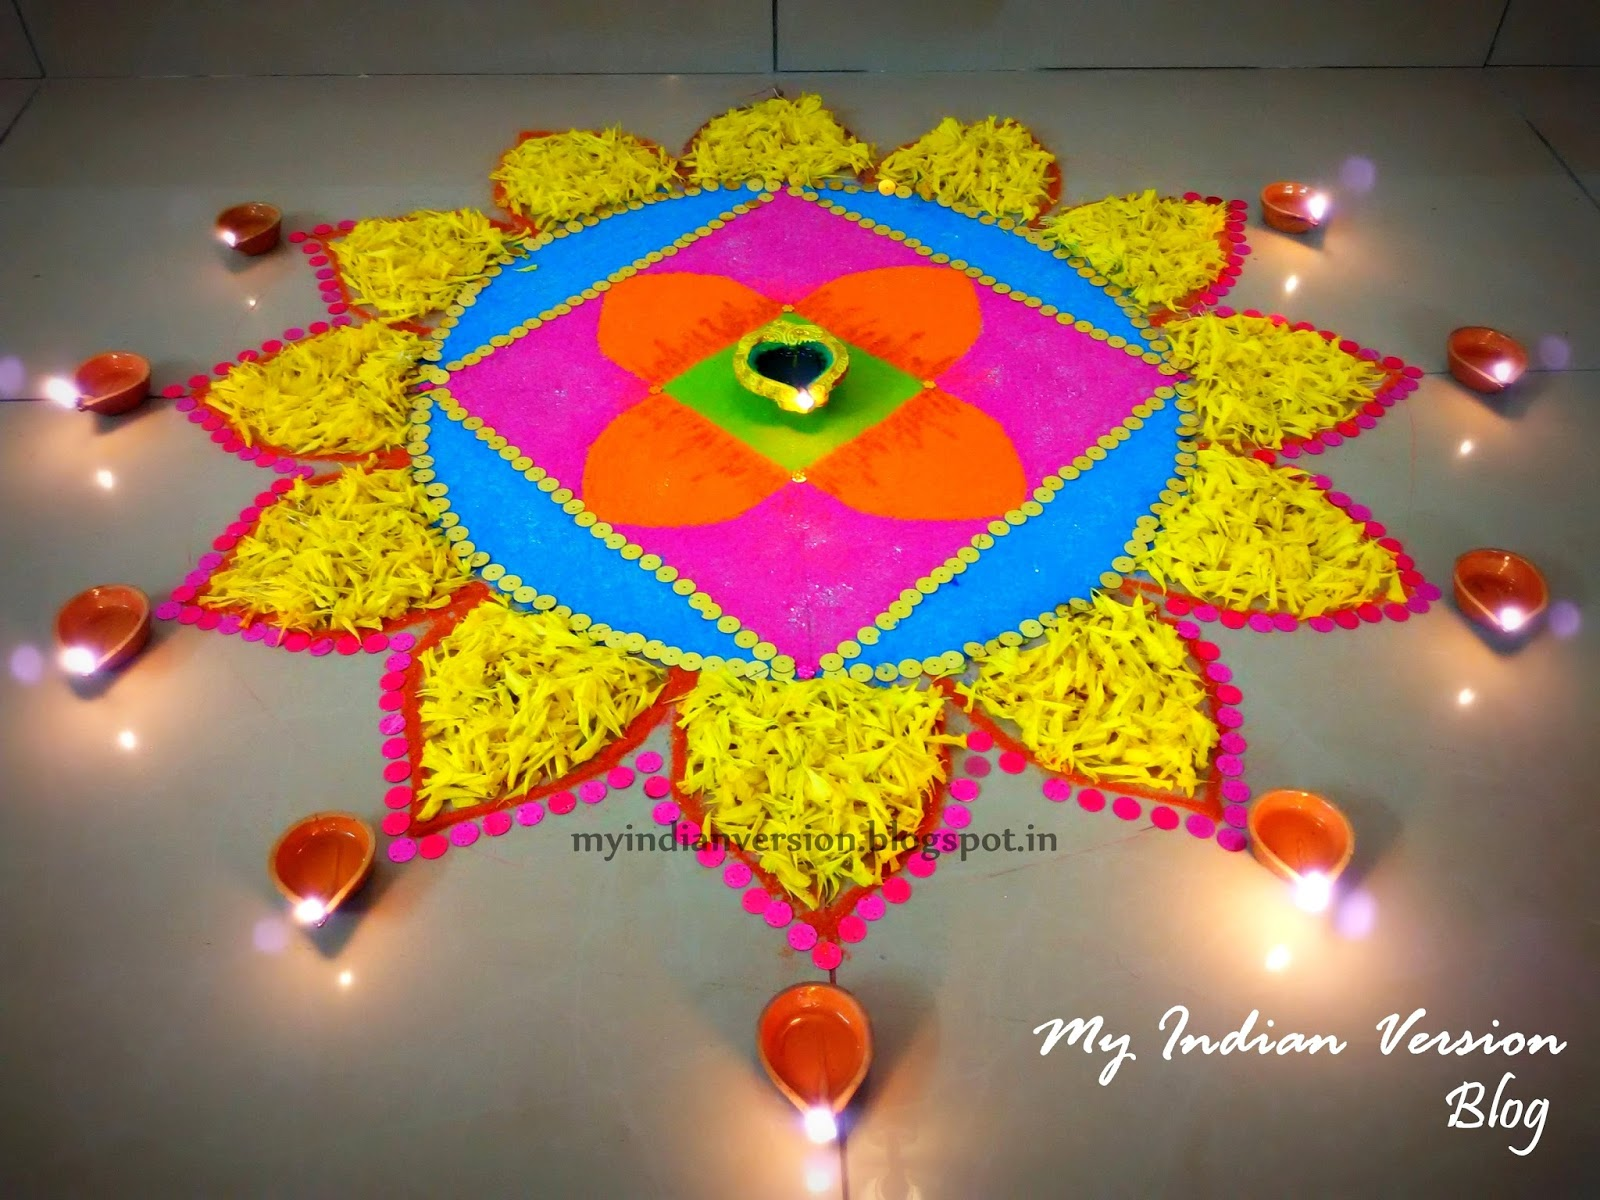 My indian version diwali festival decorations at my home for How to make diwali decorations at home